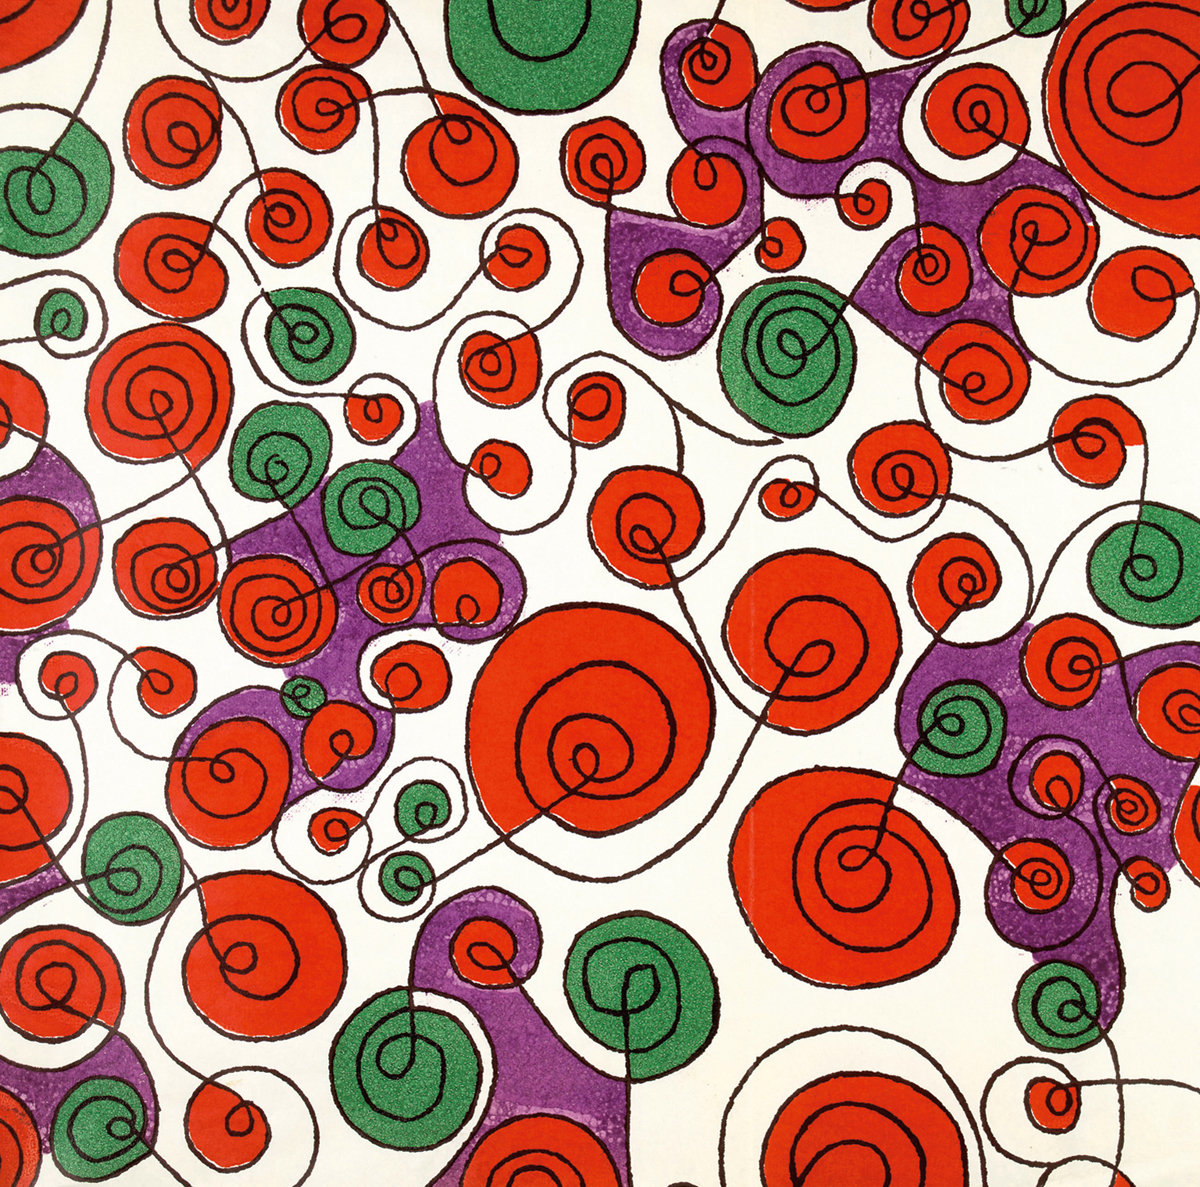 Whirlygig print, designed by Colleen Farr for Liberty & co, 1960, © Liberty Fabric Ltd